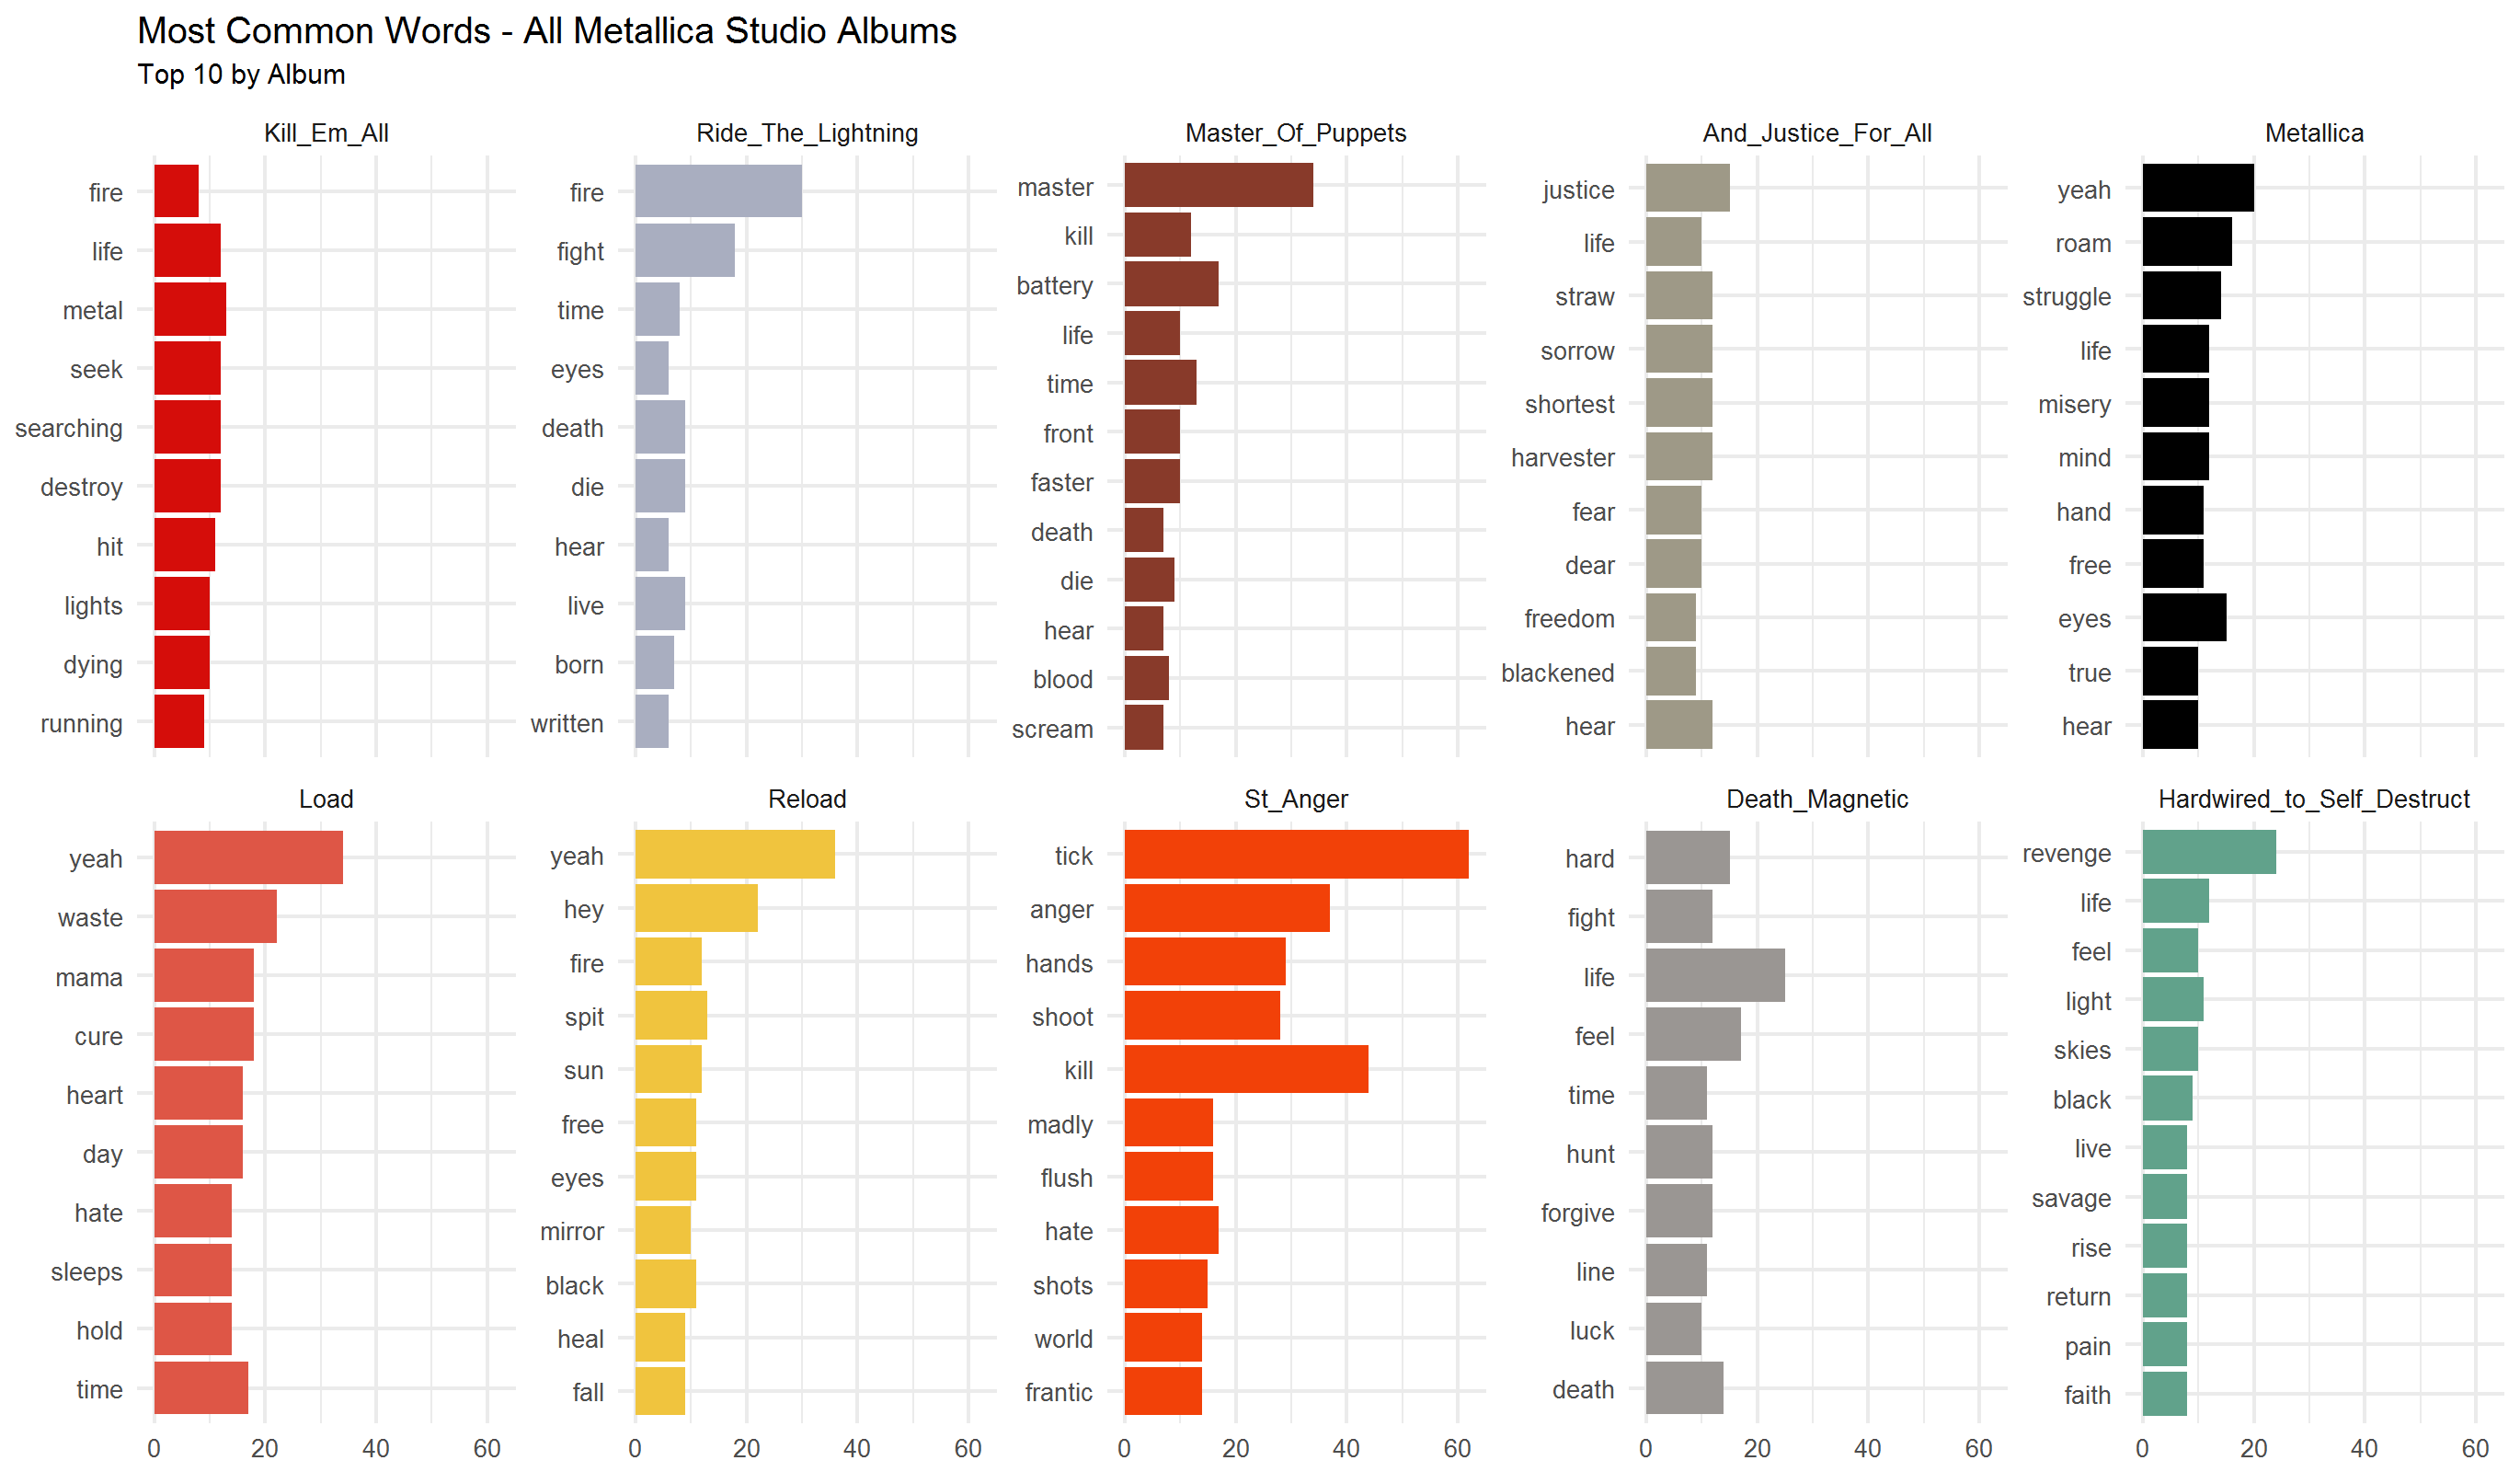 2018-02-03-Most-Common-Words-by-Album.png